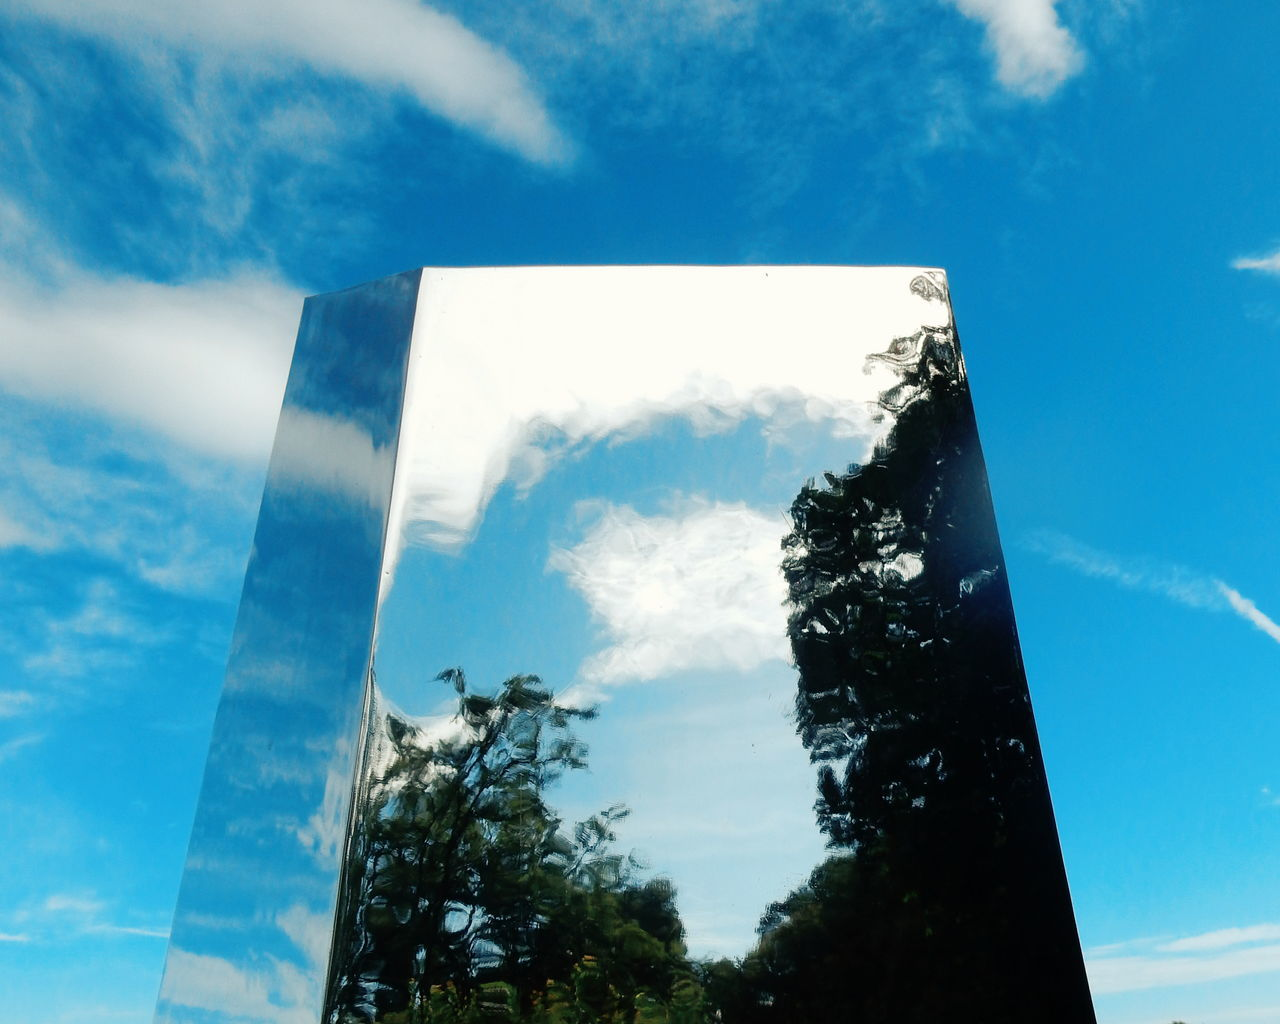 Low Angle View Of Metallic Sculpture Against Sky